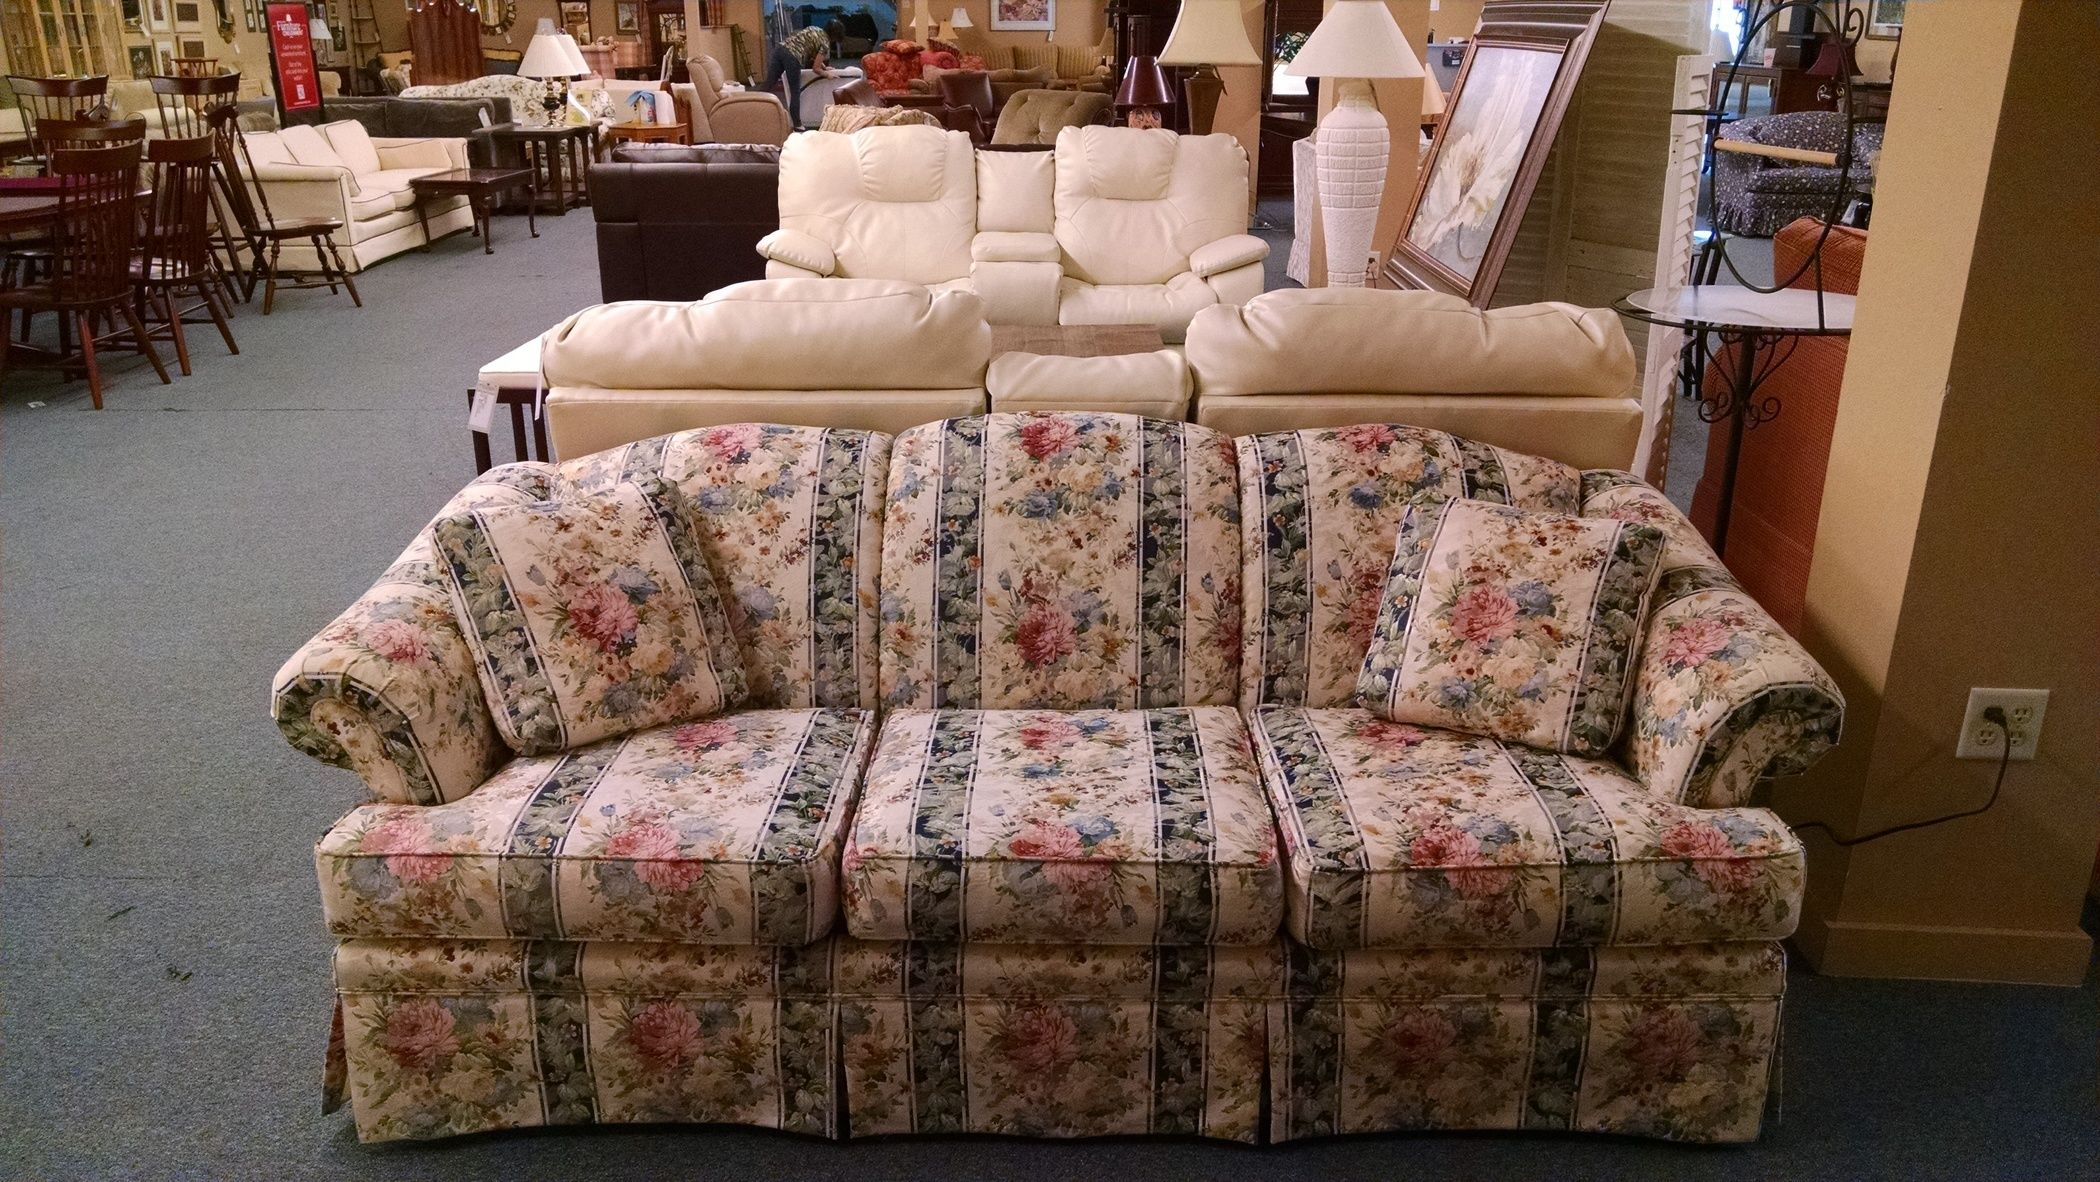 century upholstered couch modern sofa mid chairish product vintage floral